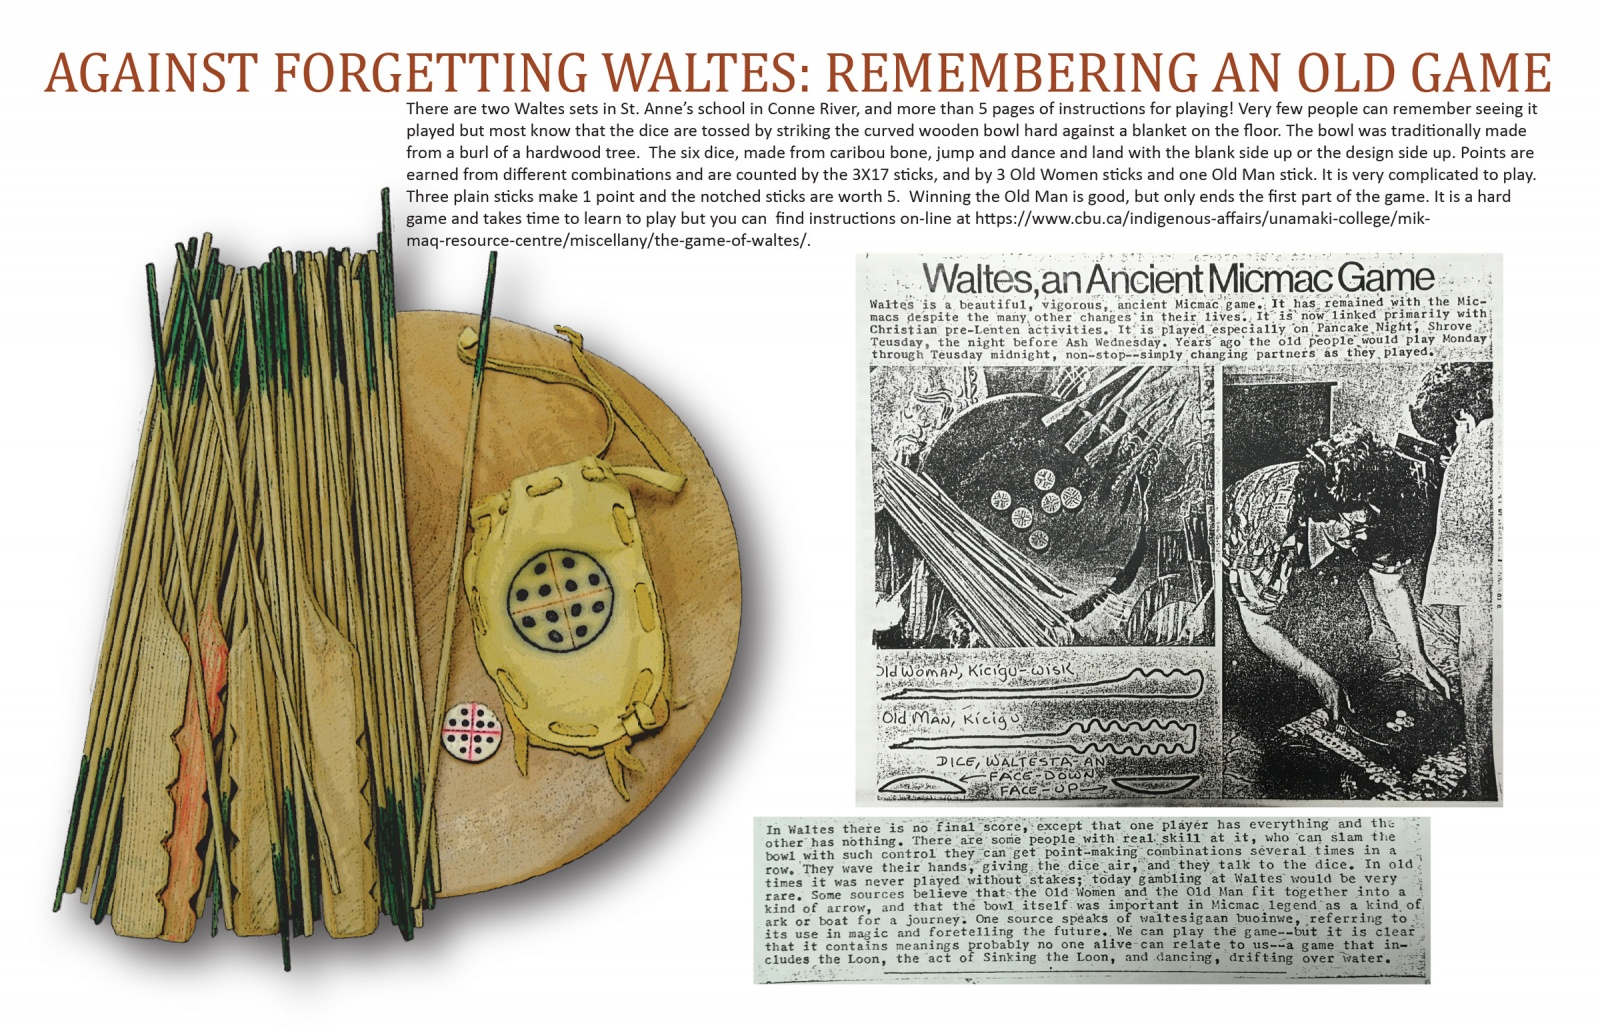 Against Forgetting Waltes: Remembering an Old Game